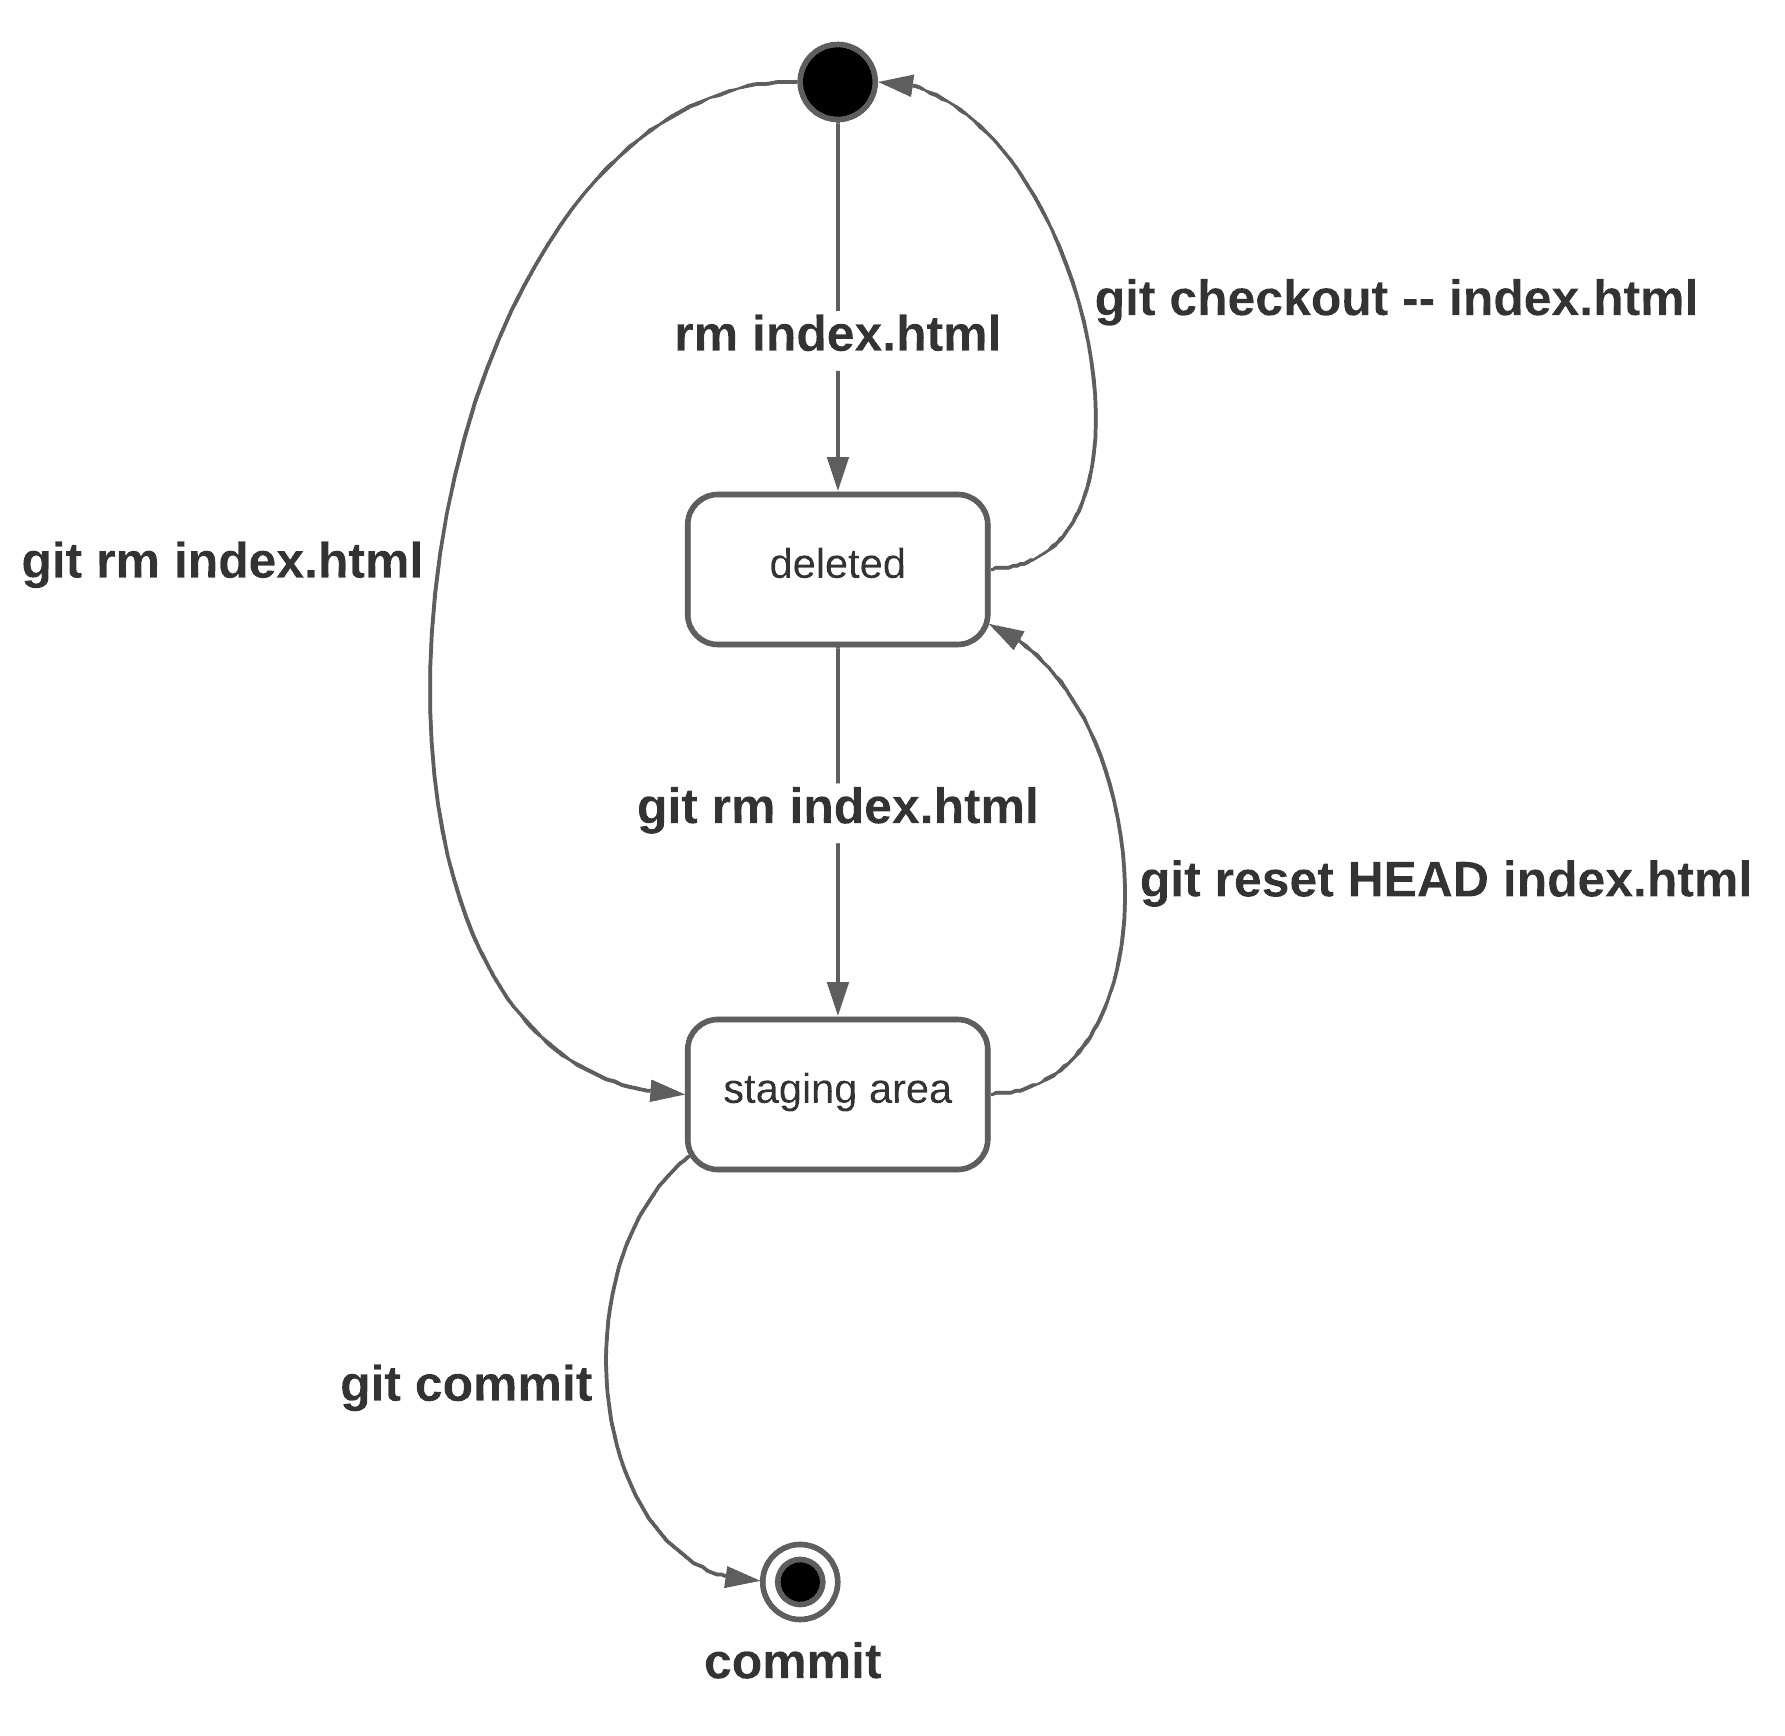 How to use git rm command